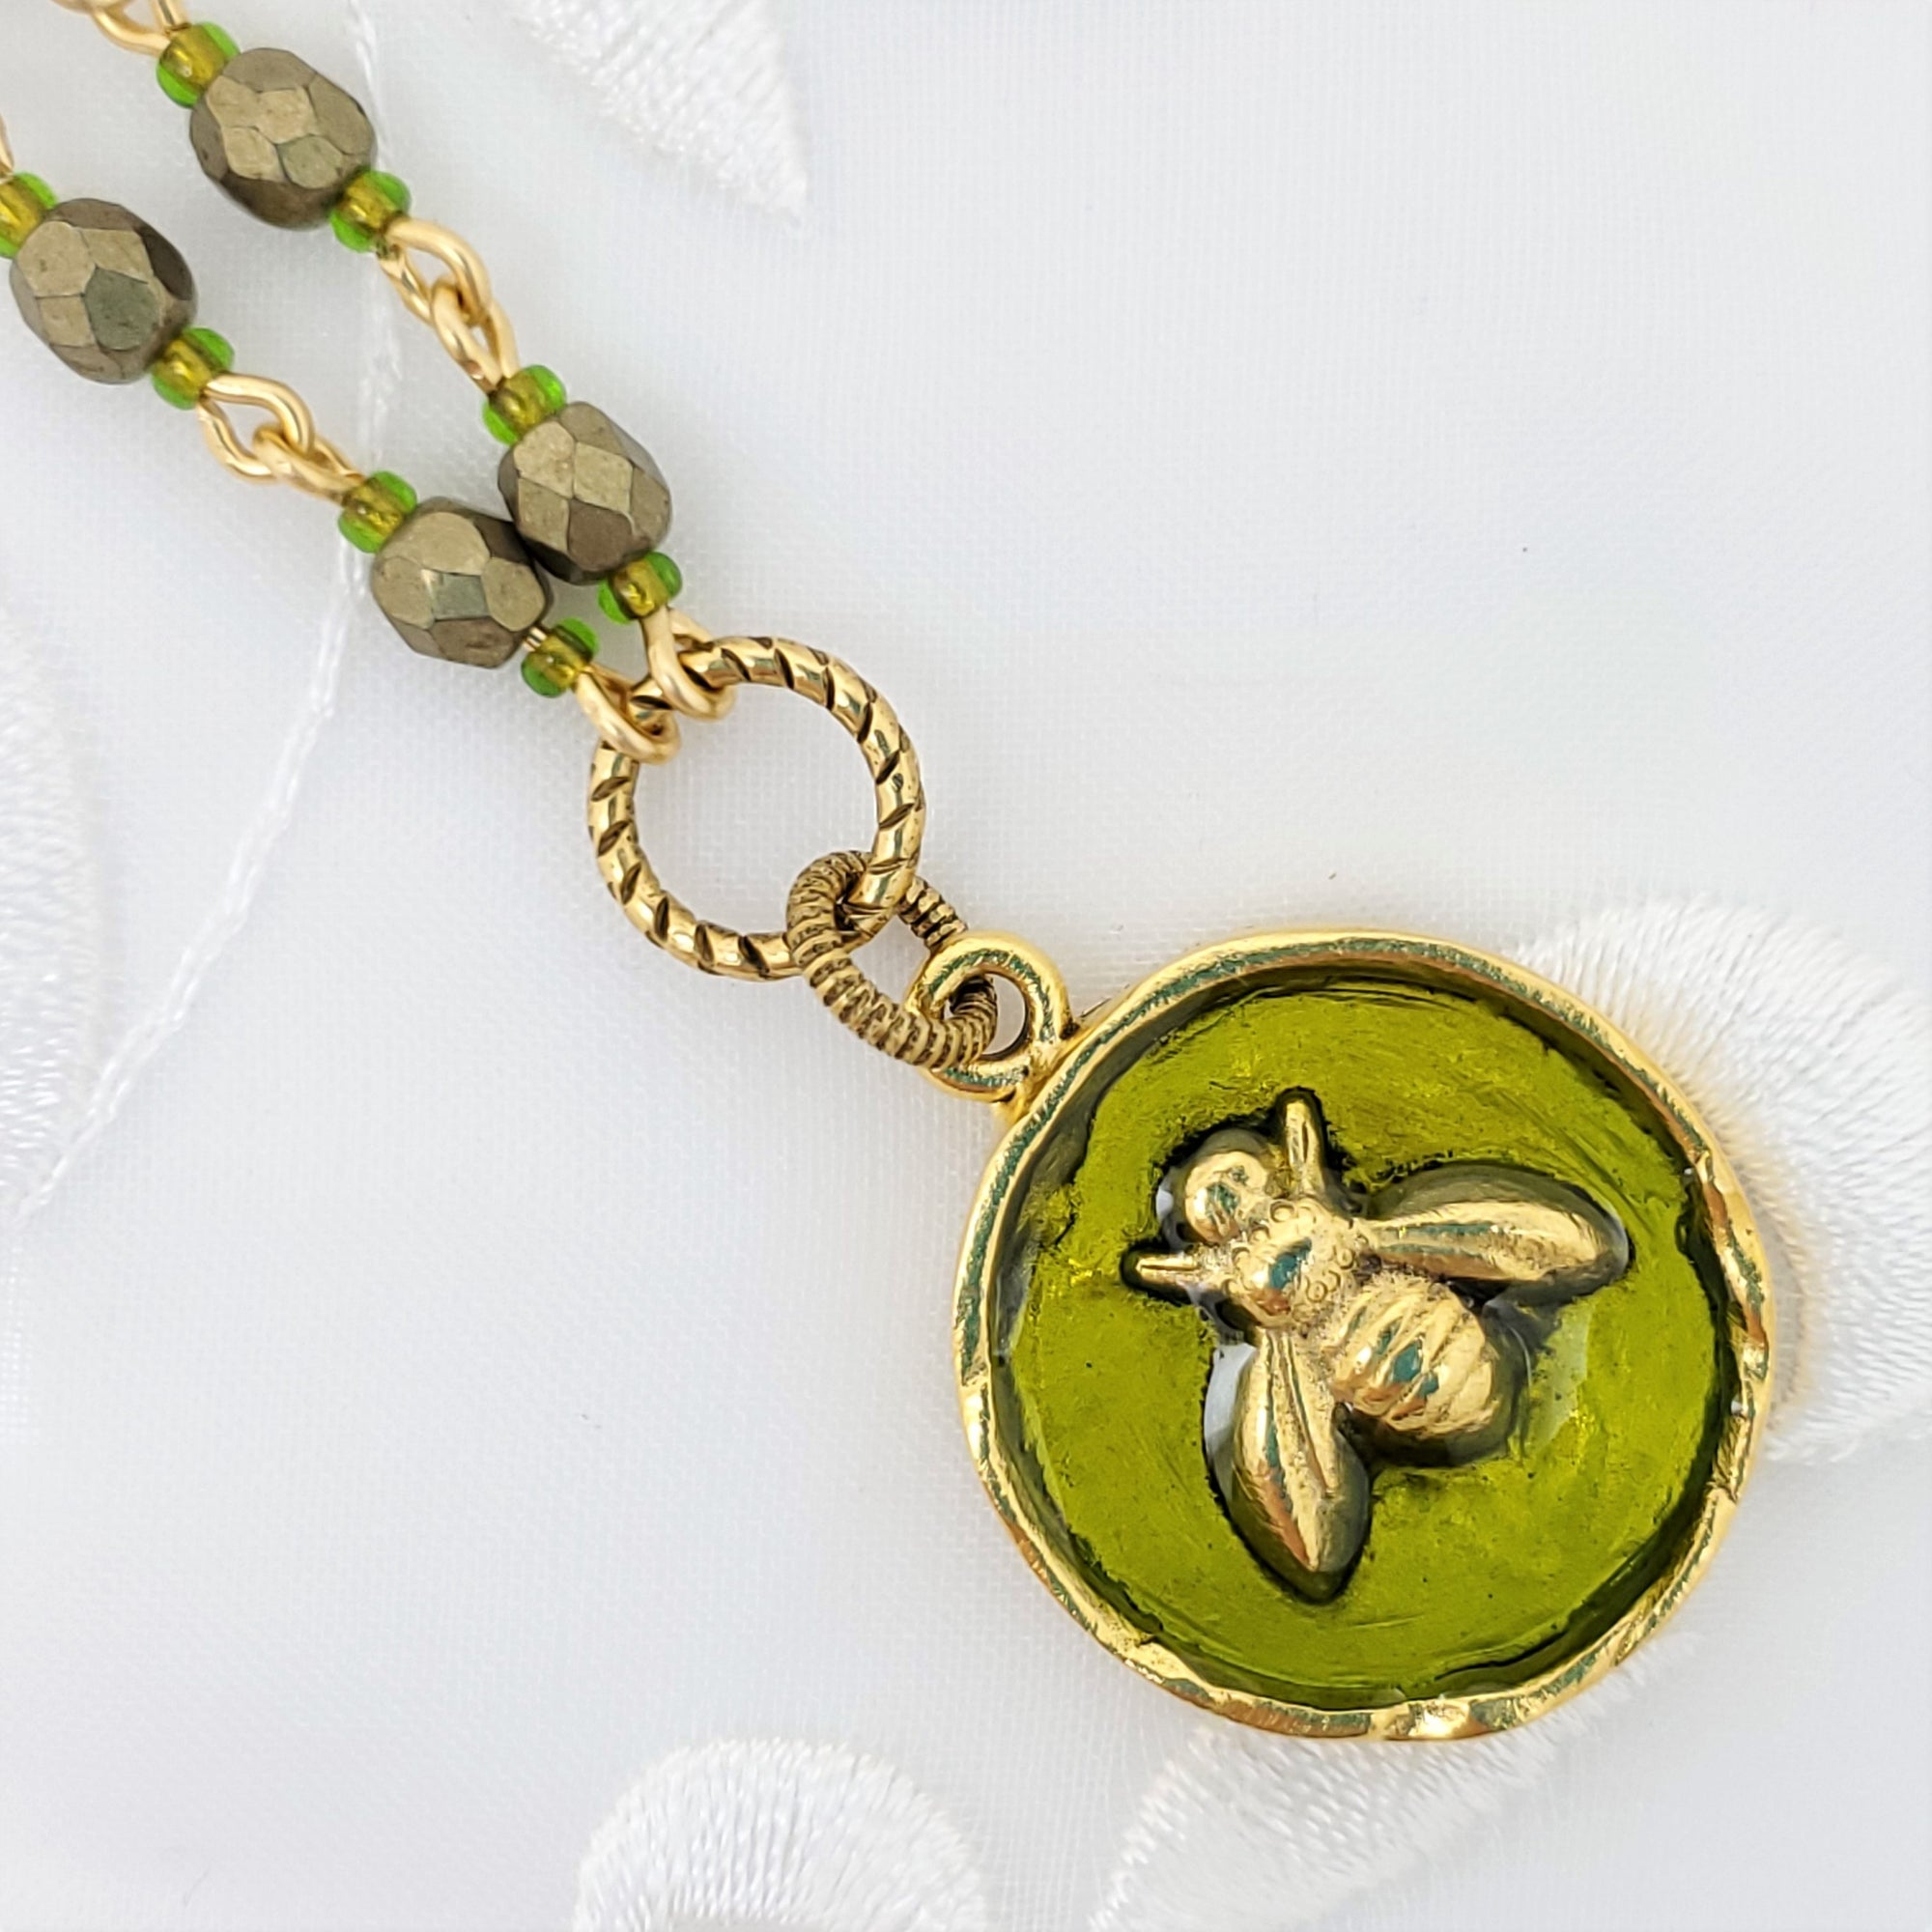 Antique Gold Bee Pendant Necklace with Olive Resin and Hand Linked Beaded Chain